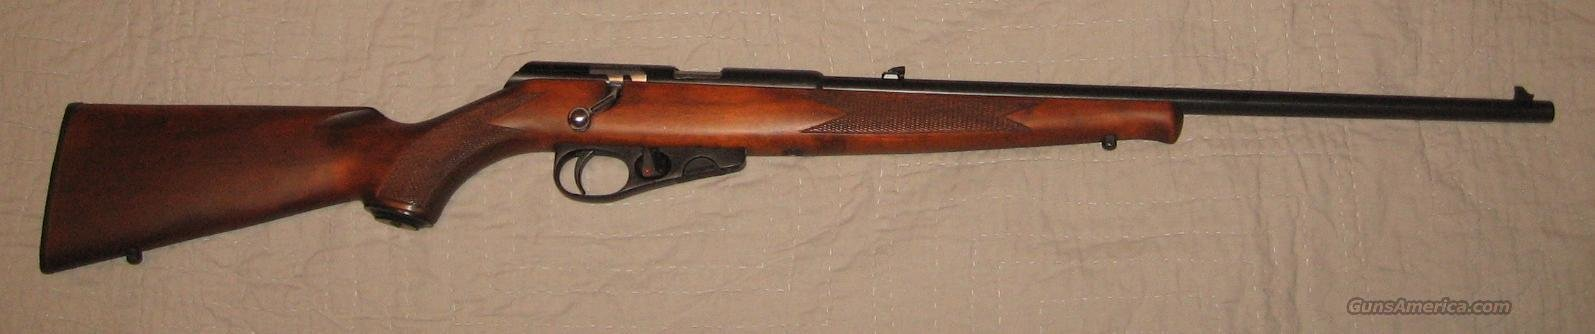 Winchester Wildcat 22 LR, blued/wood  Guns > Rifles > Winchester Rifles - Modern Bolt/Auto/Single > Single Shot